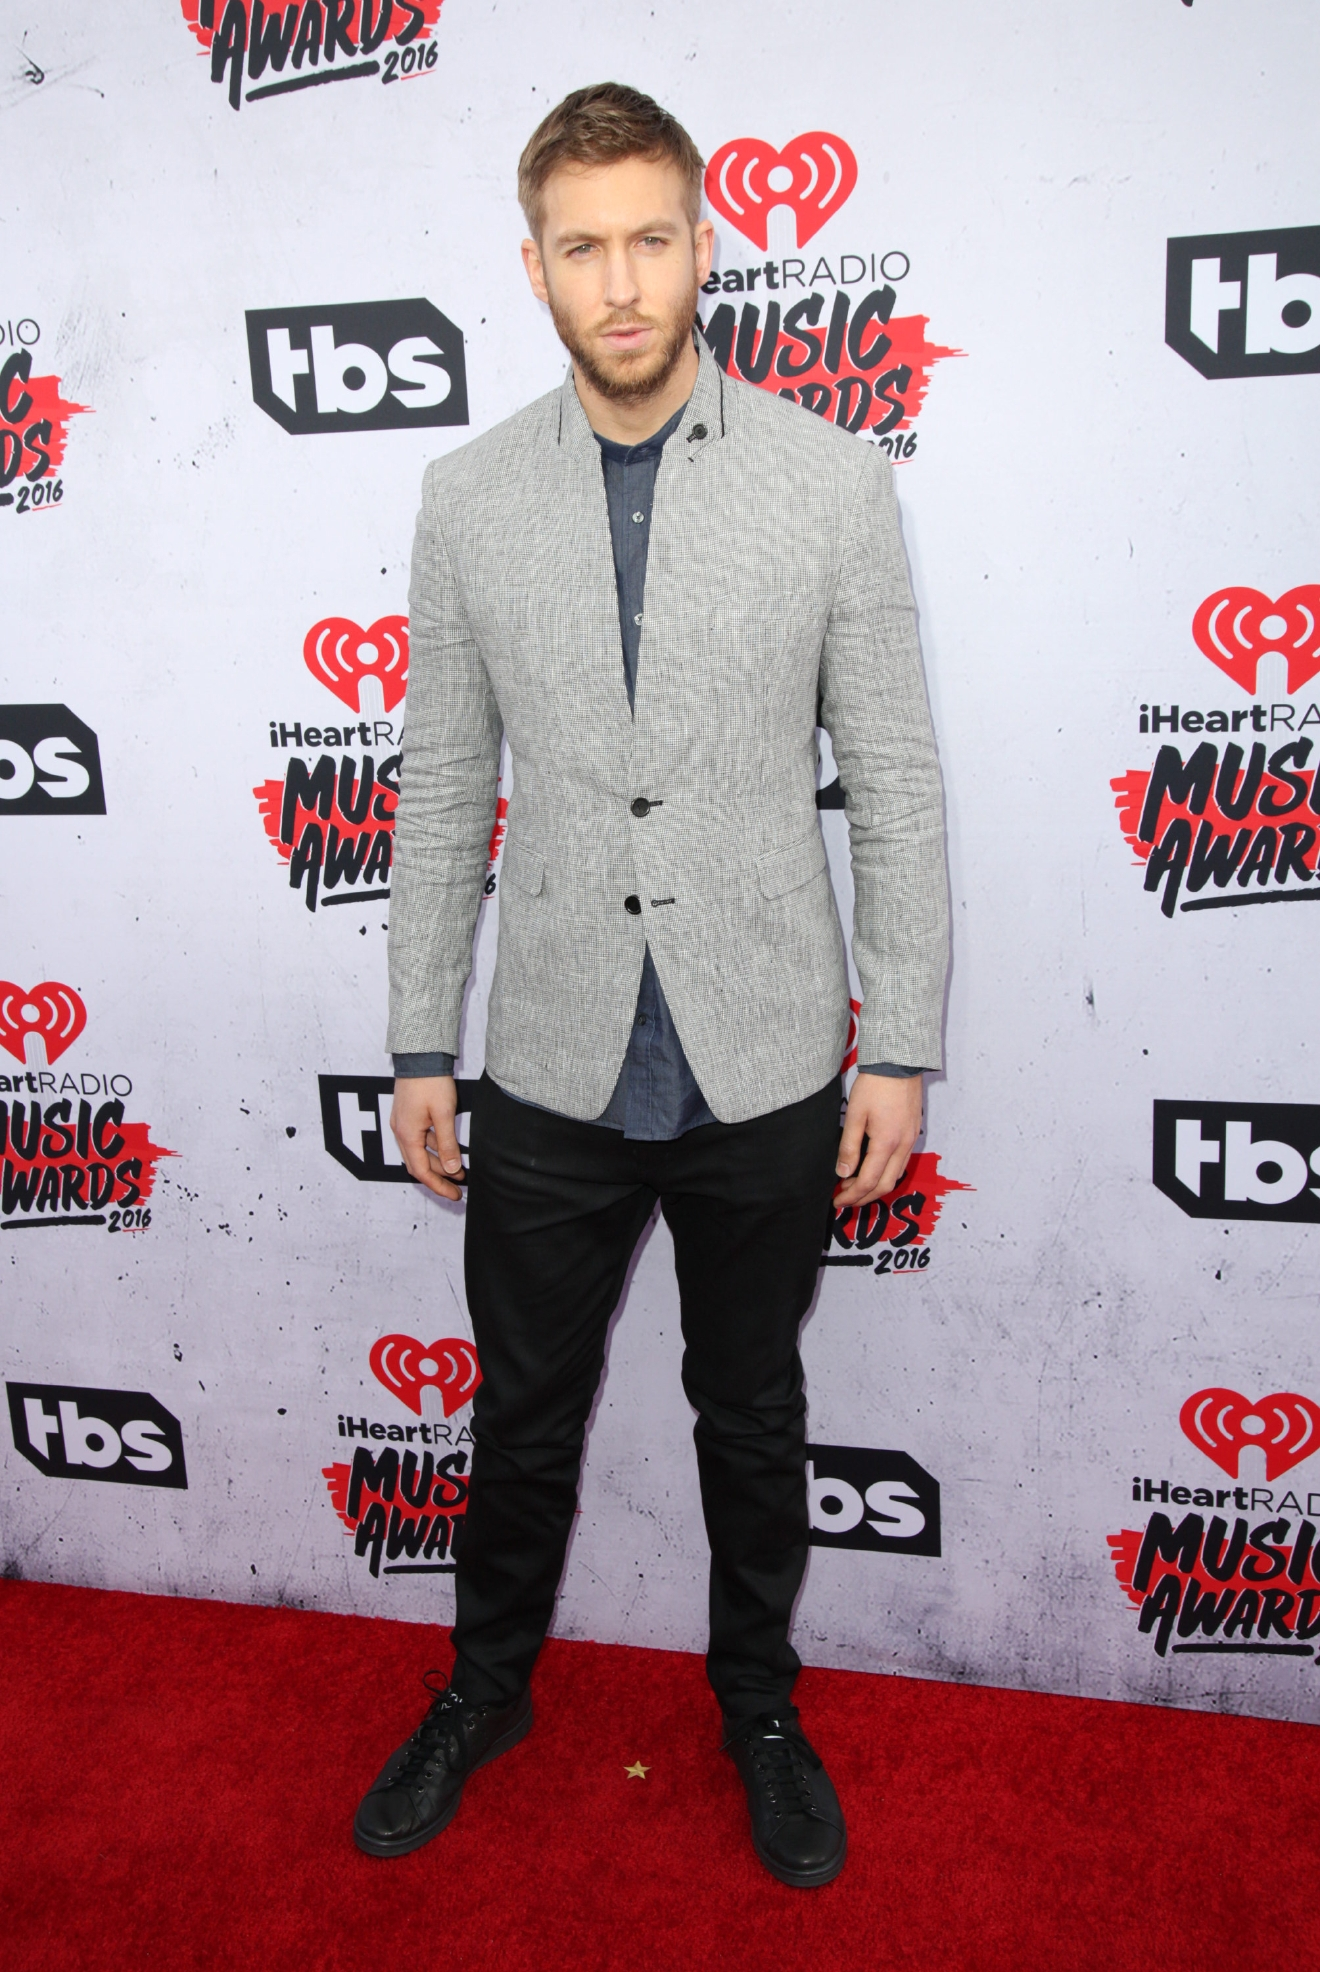 Celebrities attend iHeartRadio Music Awards at The Forum.  Featuring: Calvin Harris Where: Los Angeles, California, United States When: 04 Apr 2016 Credit: Brian To/WENN.com